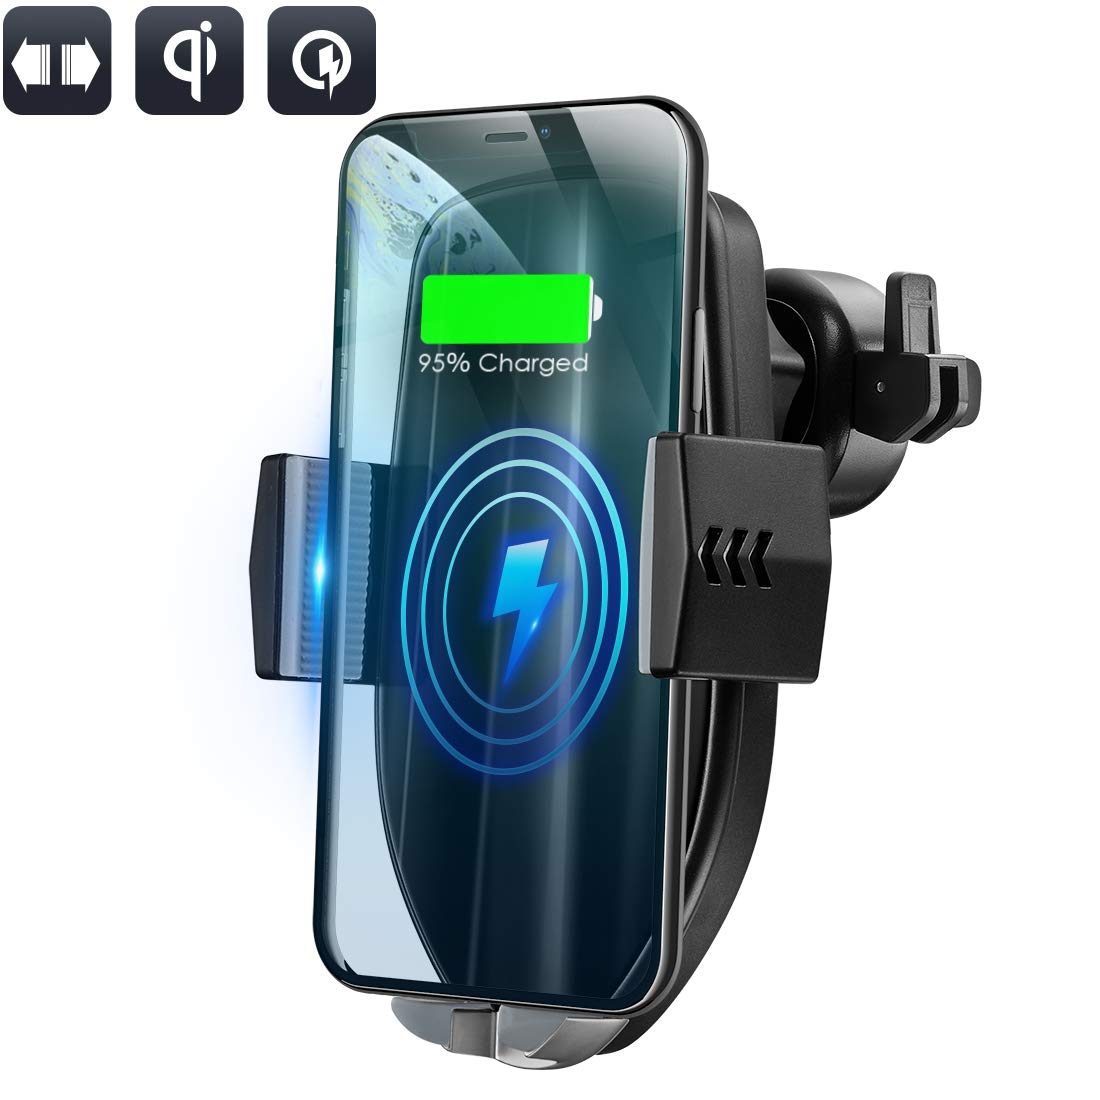 Nota 8 e Tutti i Dispositivi Dotati di Ricarica Wireless S8 Olycism Caricatore Wireless Auto Caricabatterie Ricarica Rapida Adatto Supporto per iPhone XR XS Max X 8 Plus Samsung Galaxy Note 9 S9